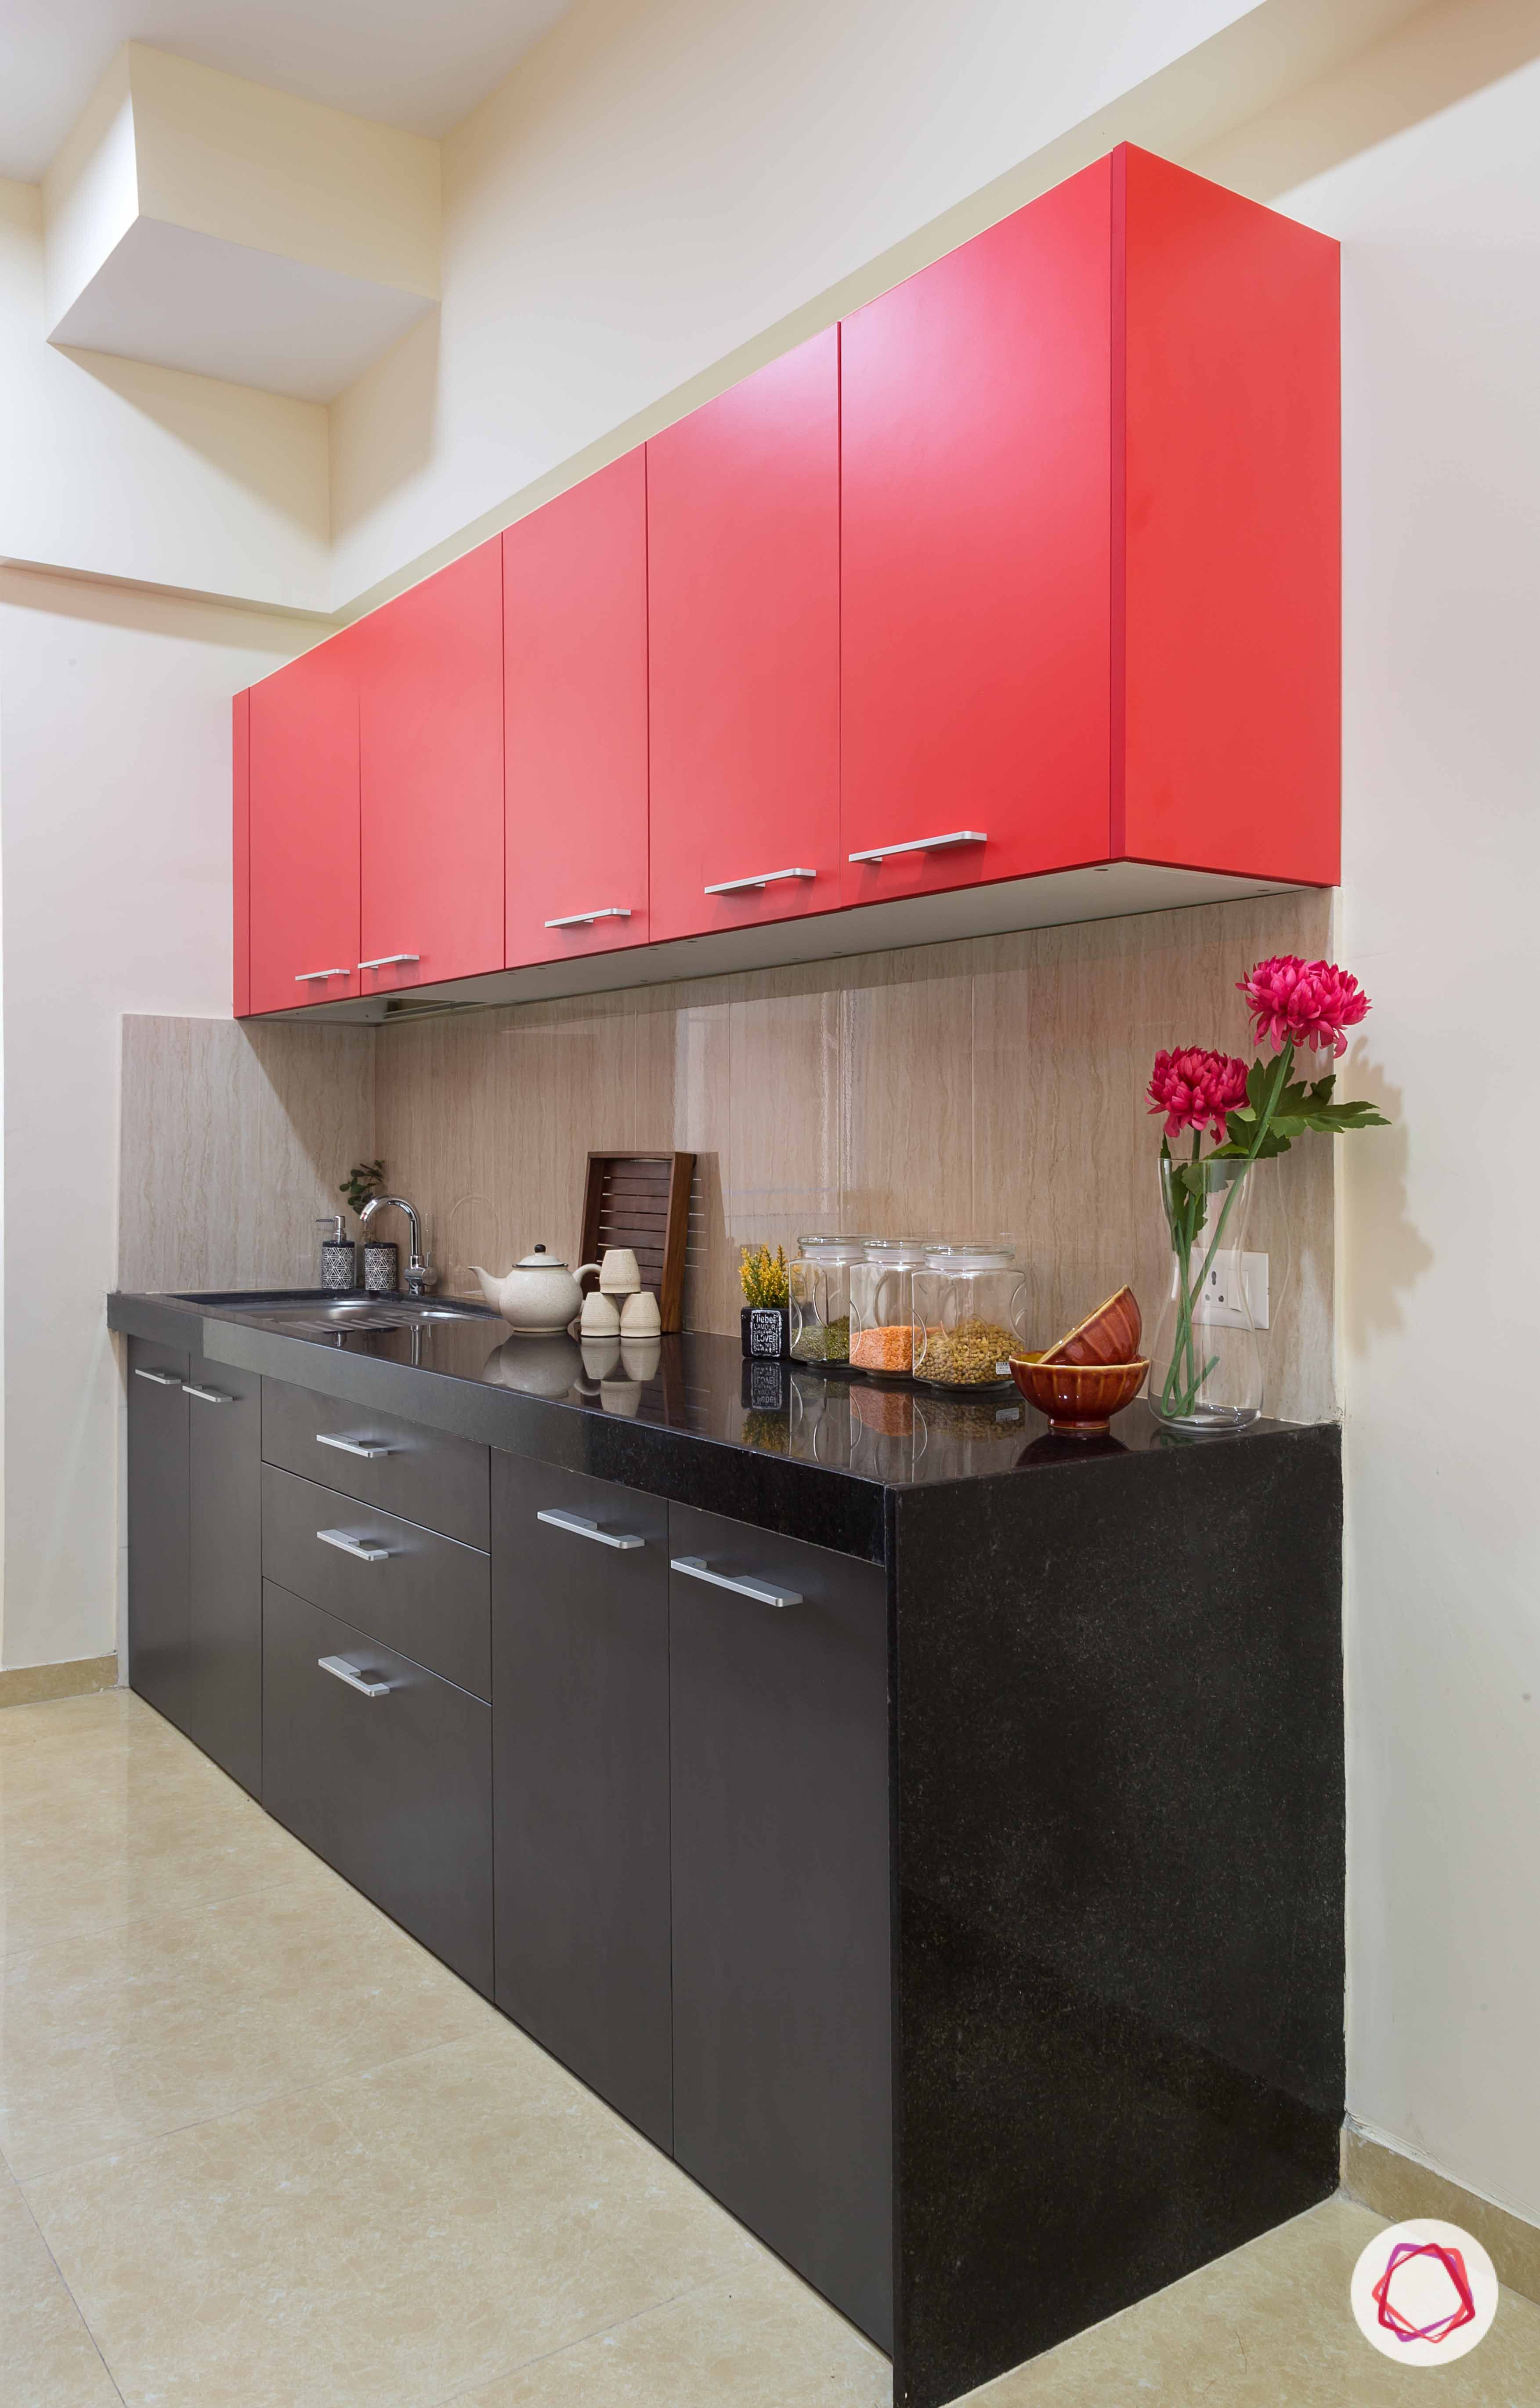 Modular kitchen in pop colors. Black, red and a beige